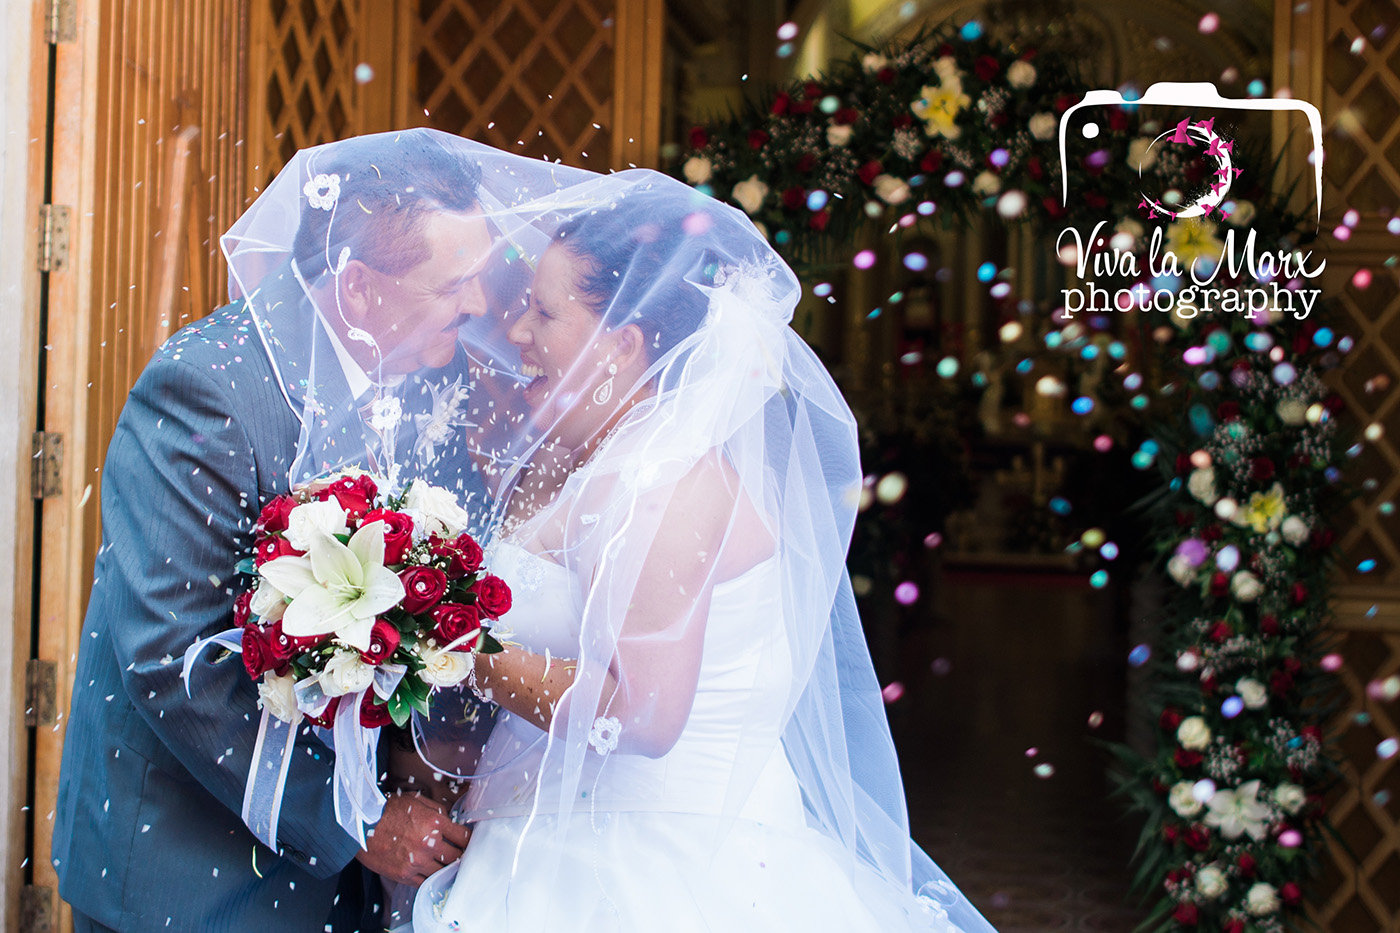 Enjoy life, enjoy those moments you create for yourself, such as your wedding day!